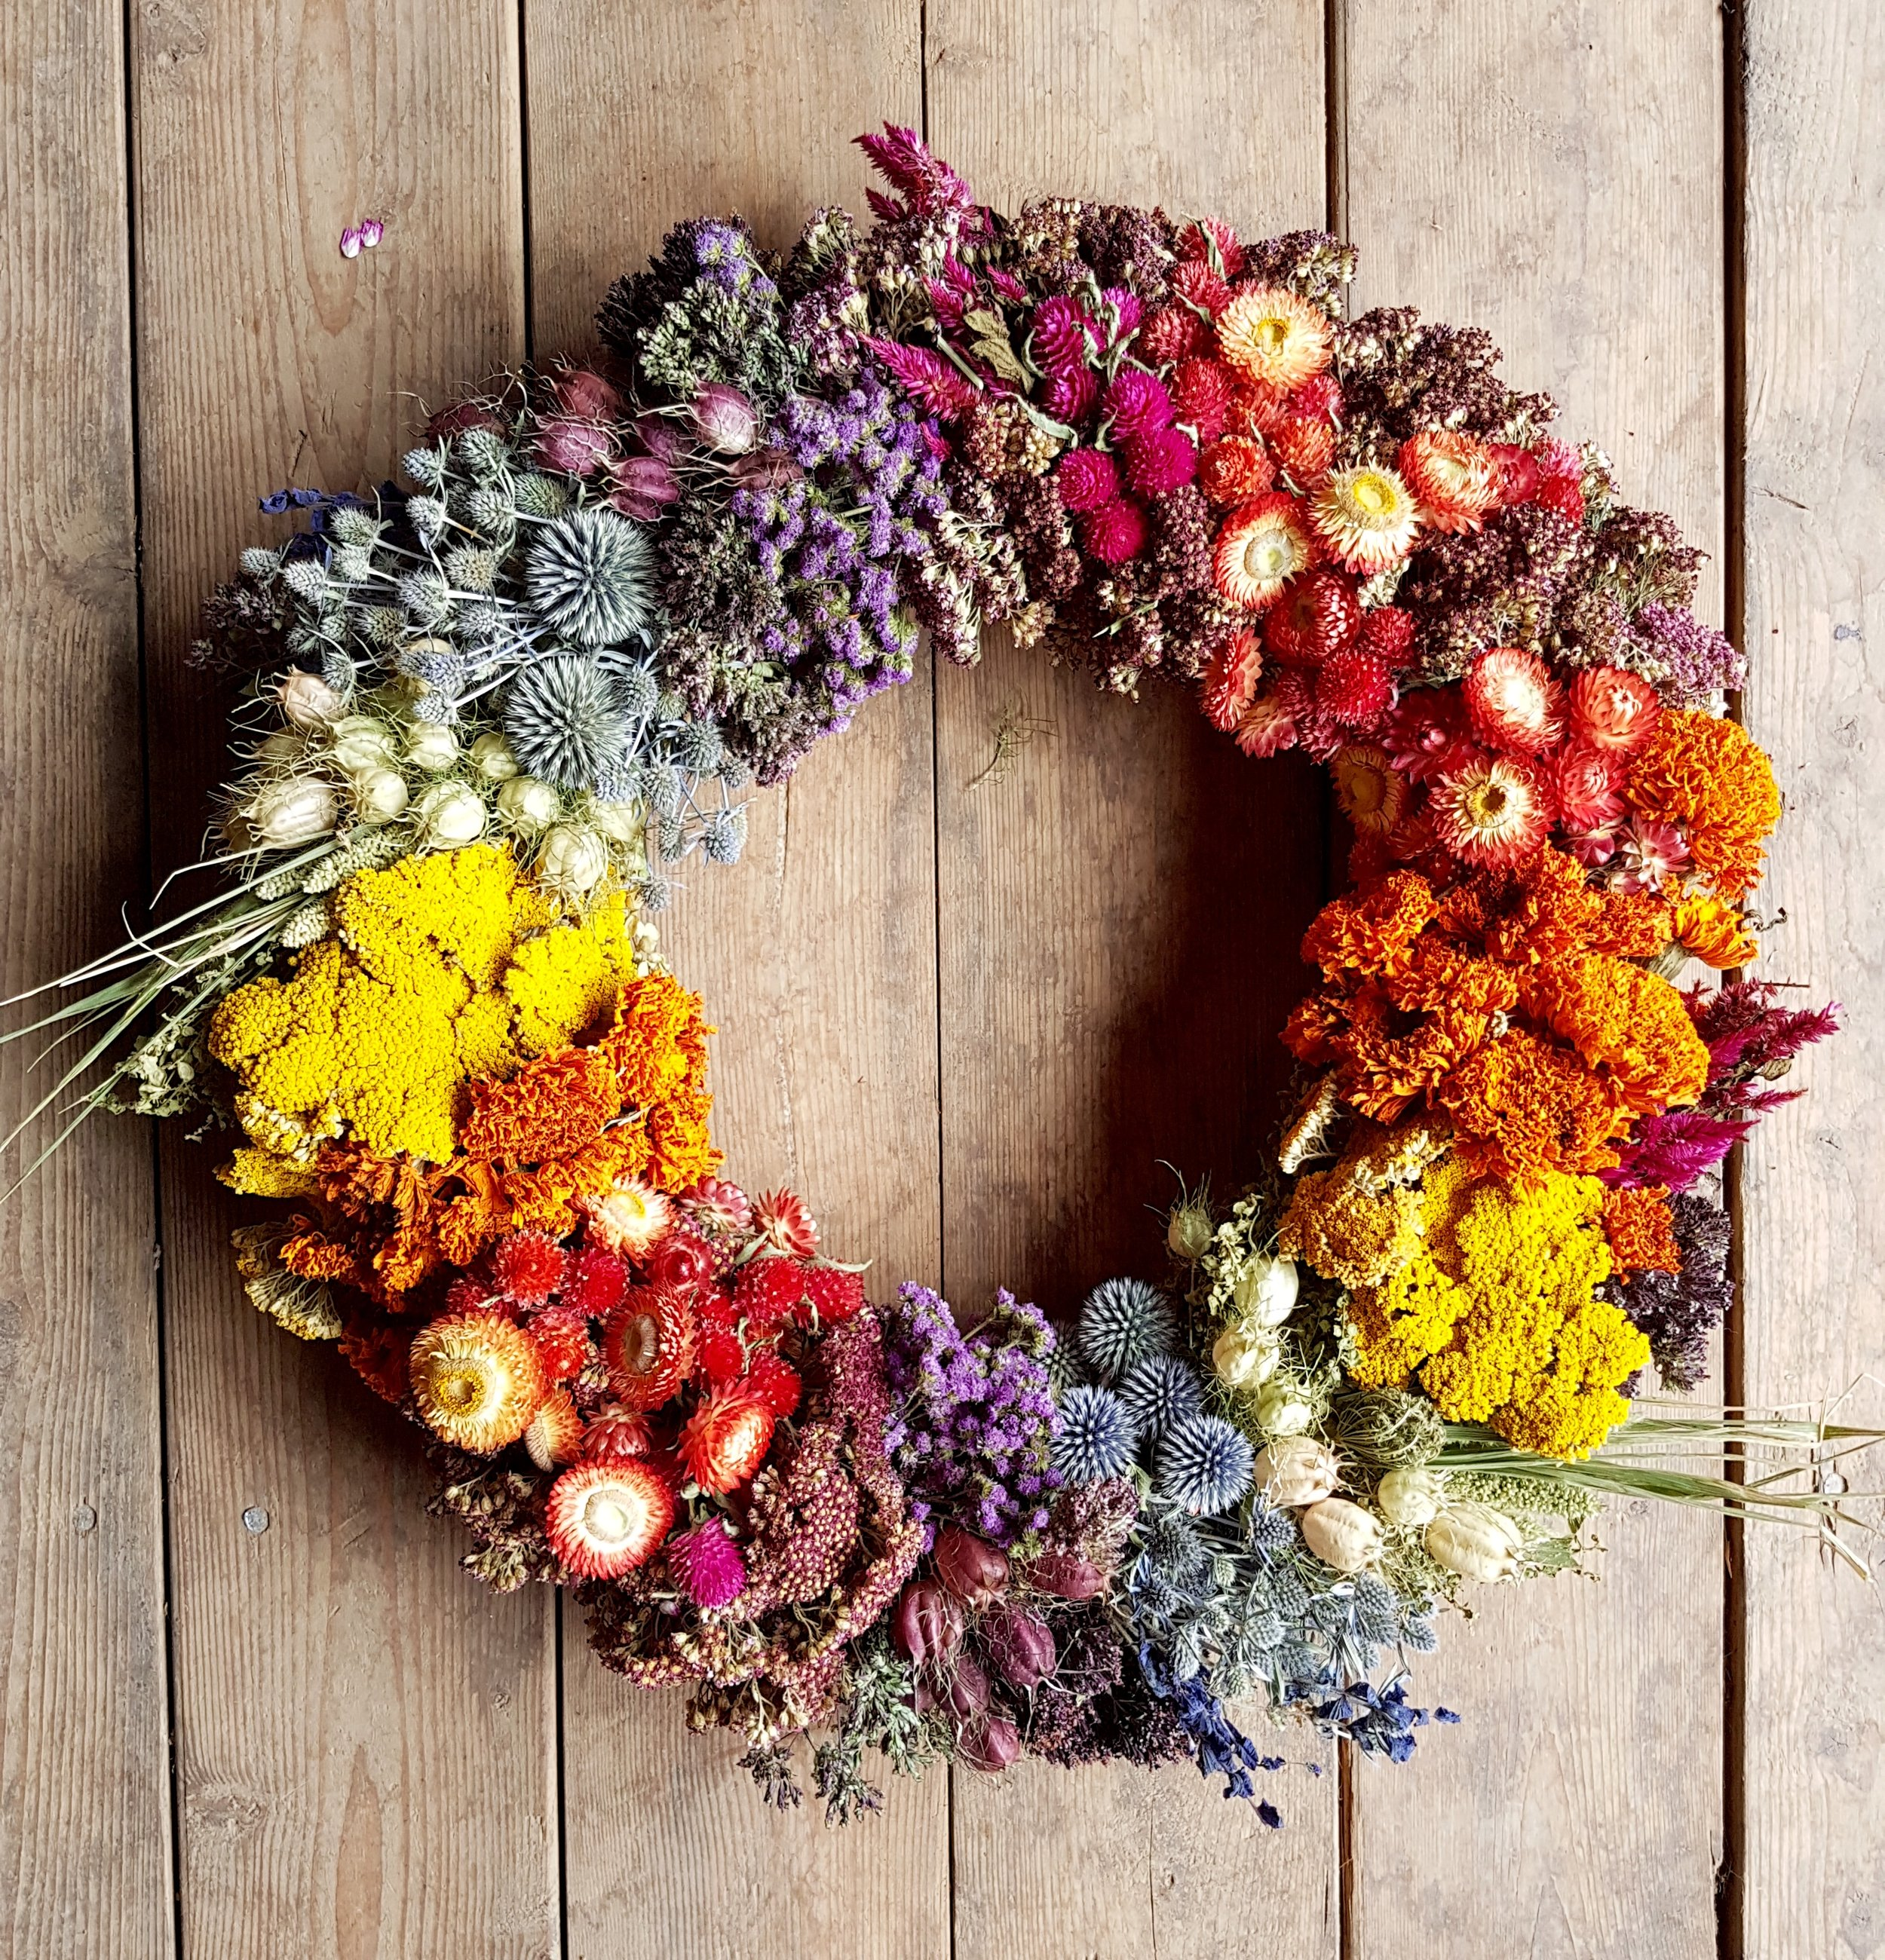 This rainbow wreath really shows off the color range that can be achieved with dried flowers!